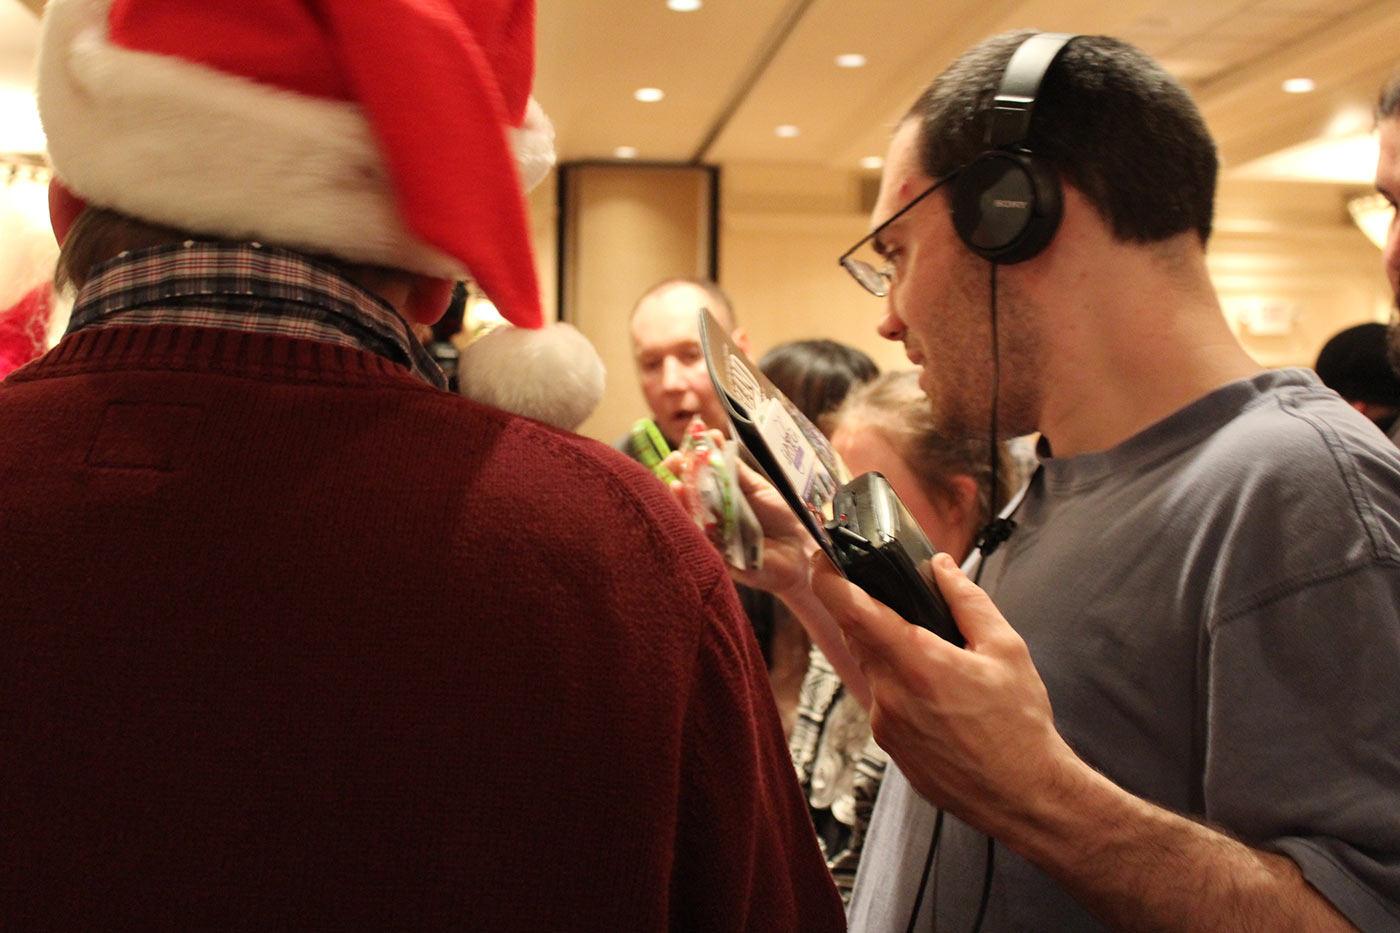 man wearing headphones checks out his gifts